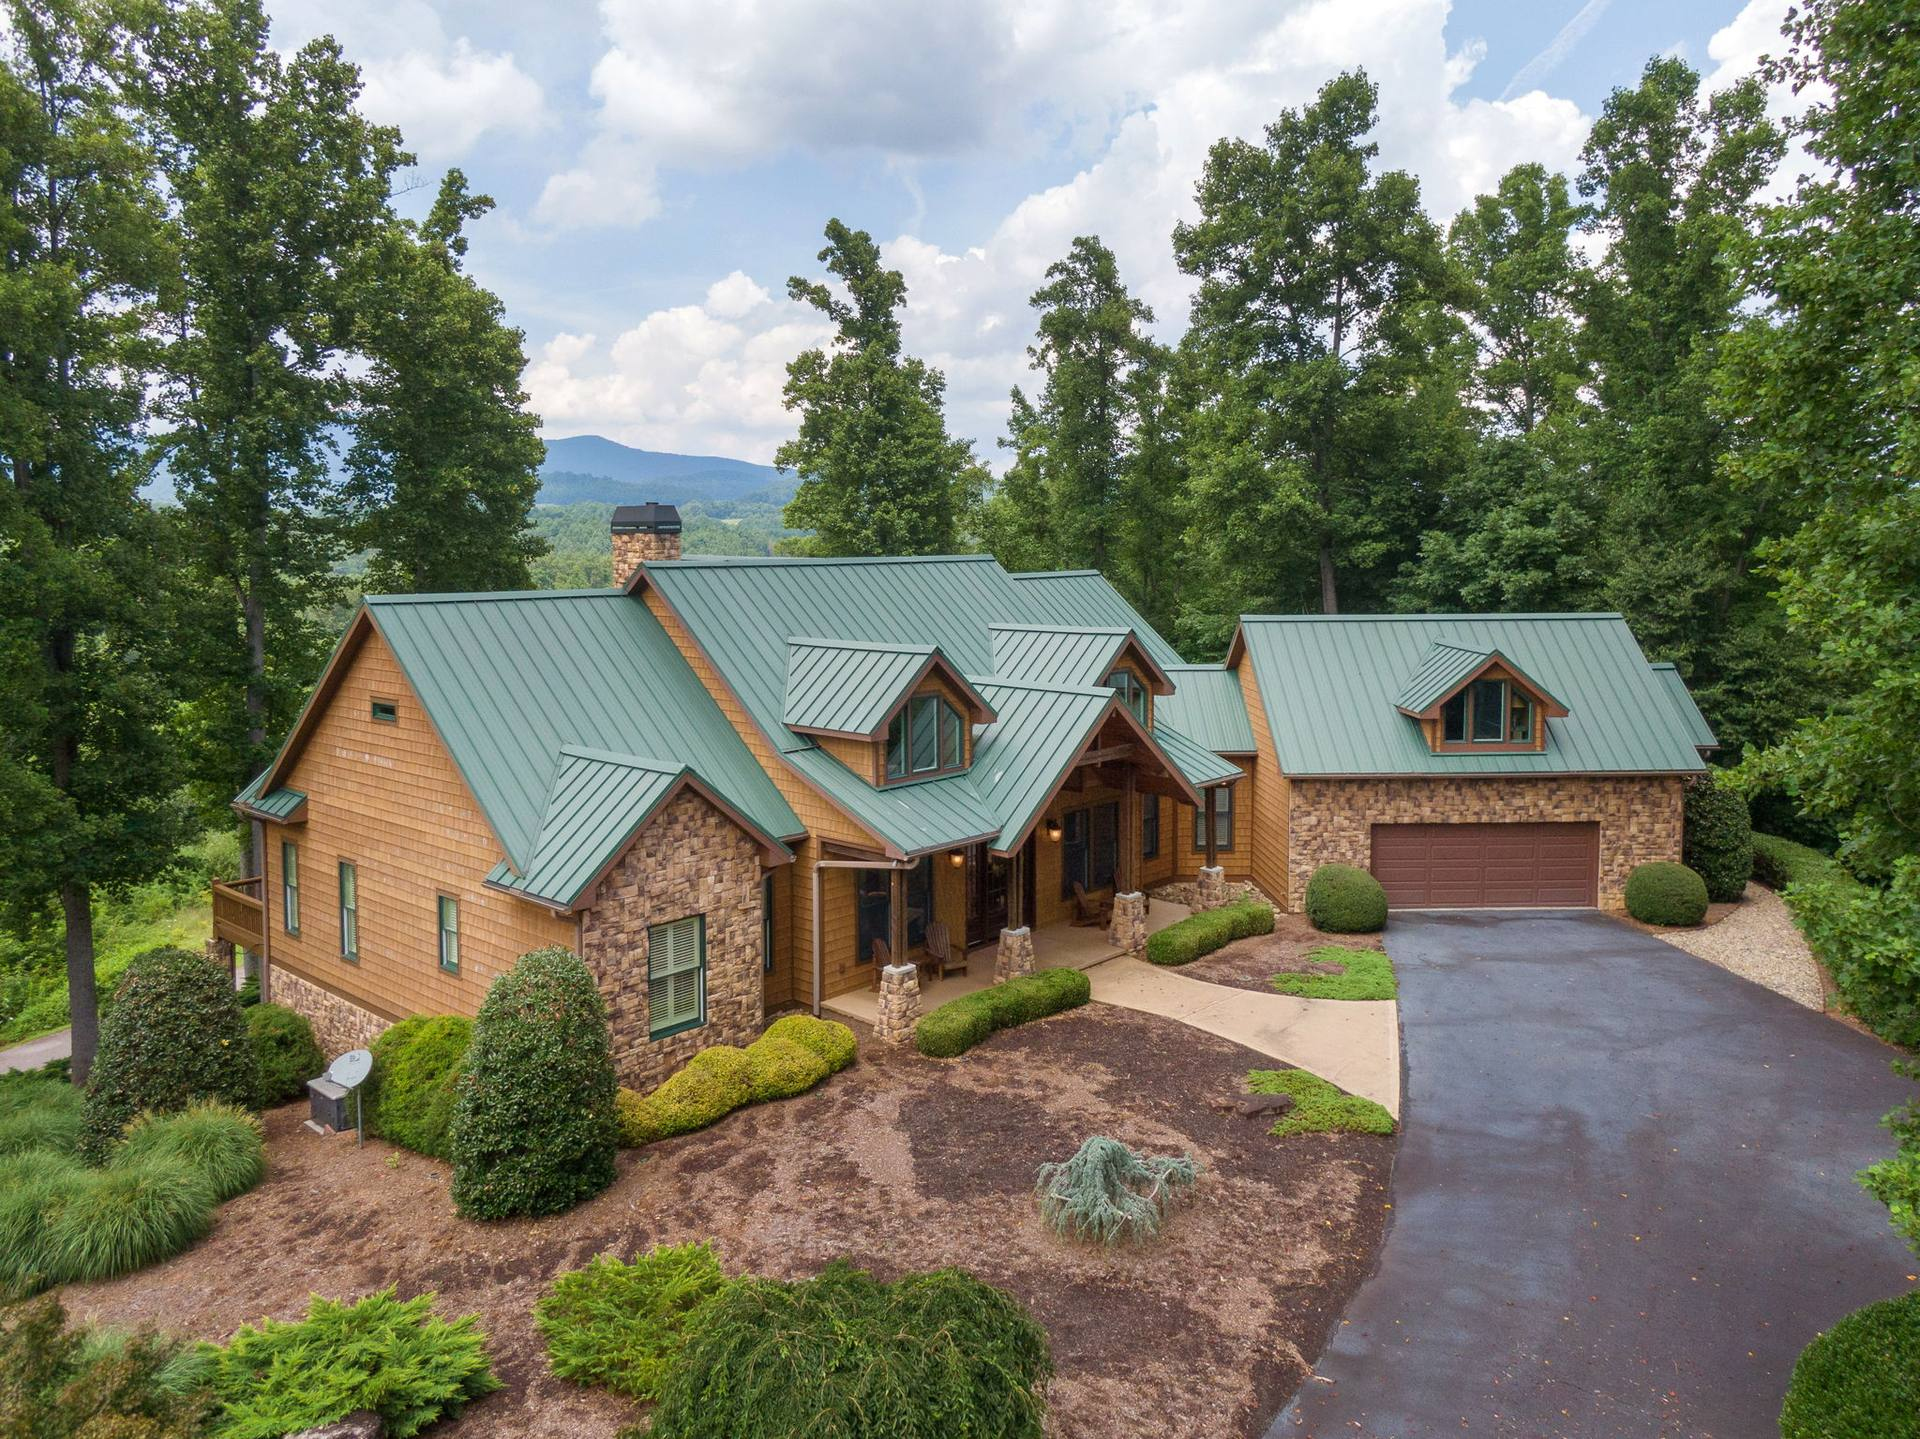 94 Southern Scenic Heights, Hendersonville, NC 28792, US